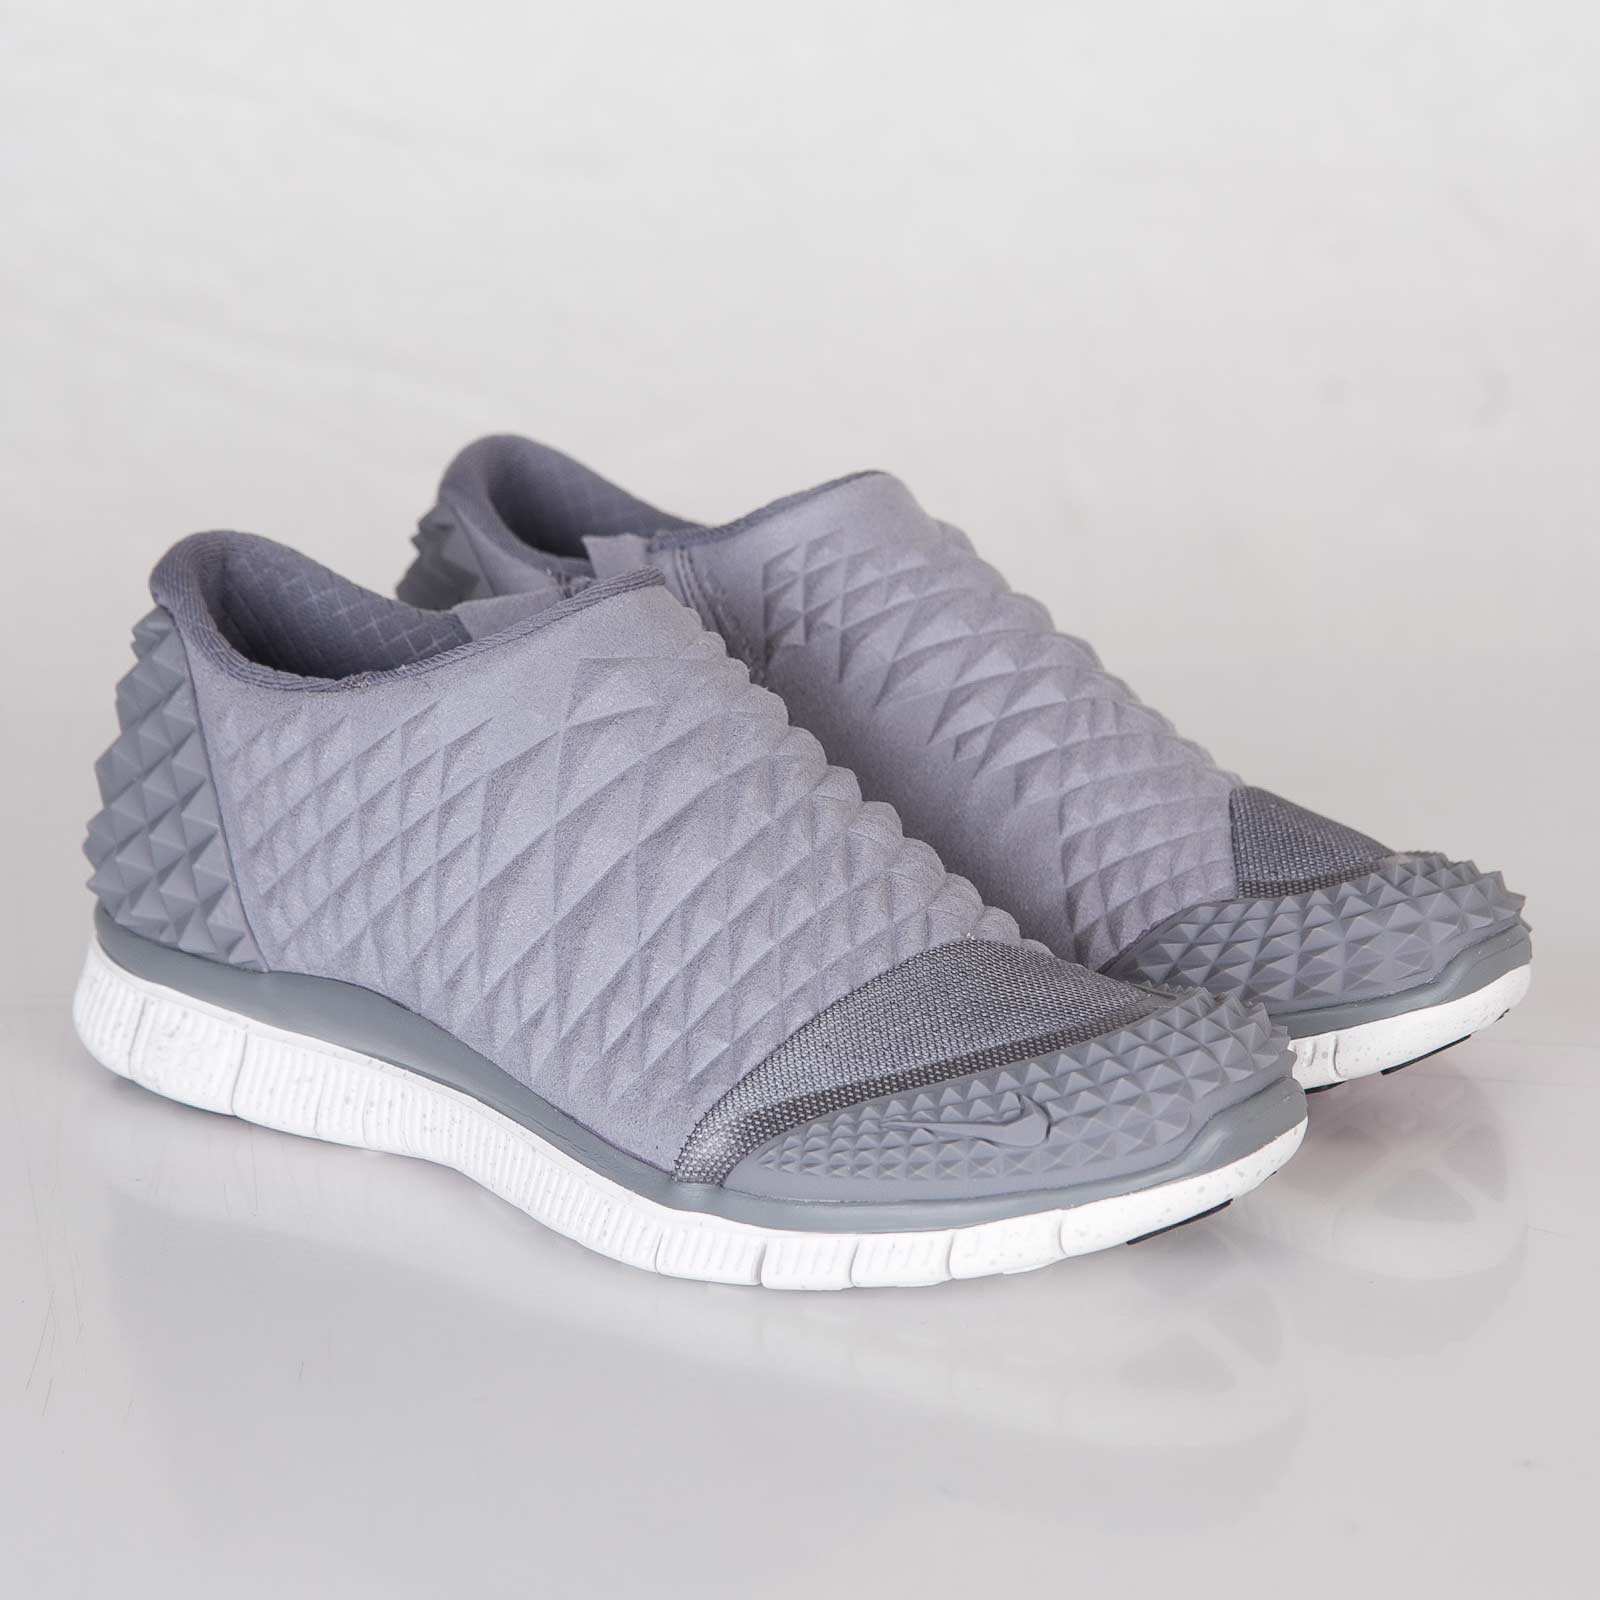 72a253bf24d9 Nike Free Orbit II SP - 657738-090 - Sneakersnstuff